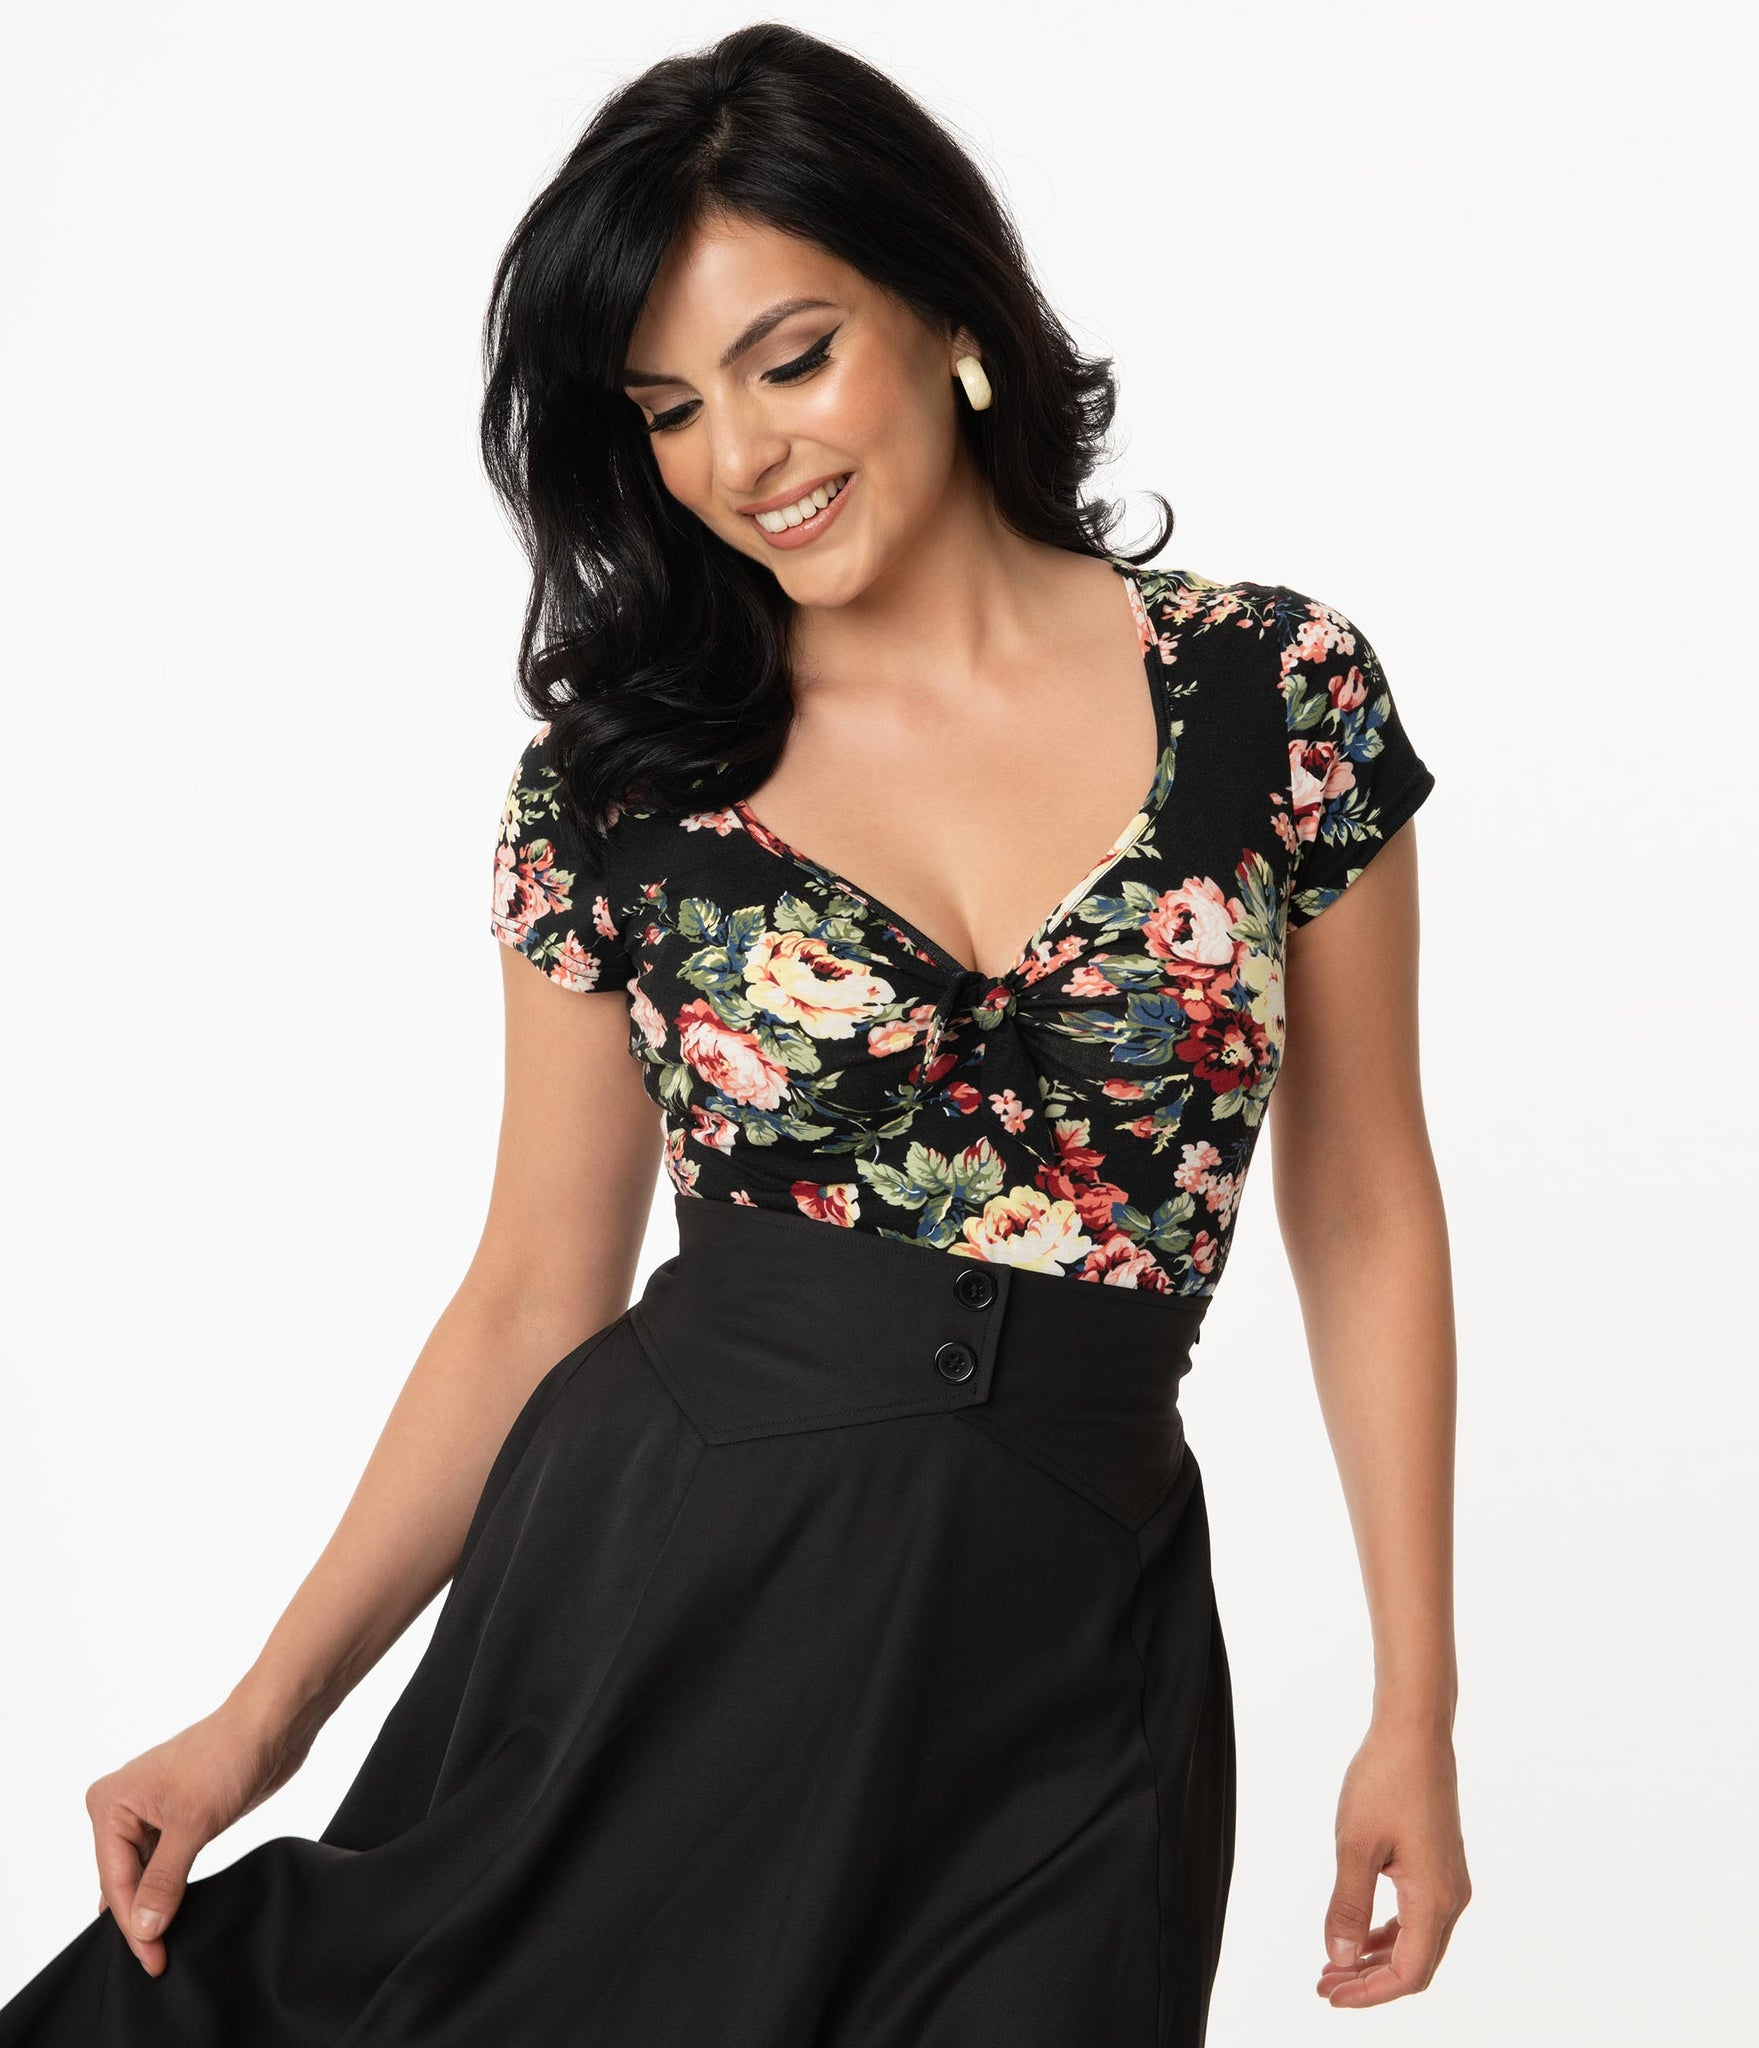 Black & Rose Print Sweetheart Rosemary Top